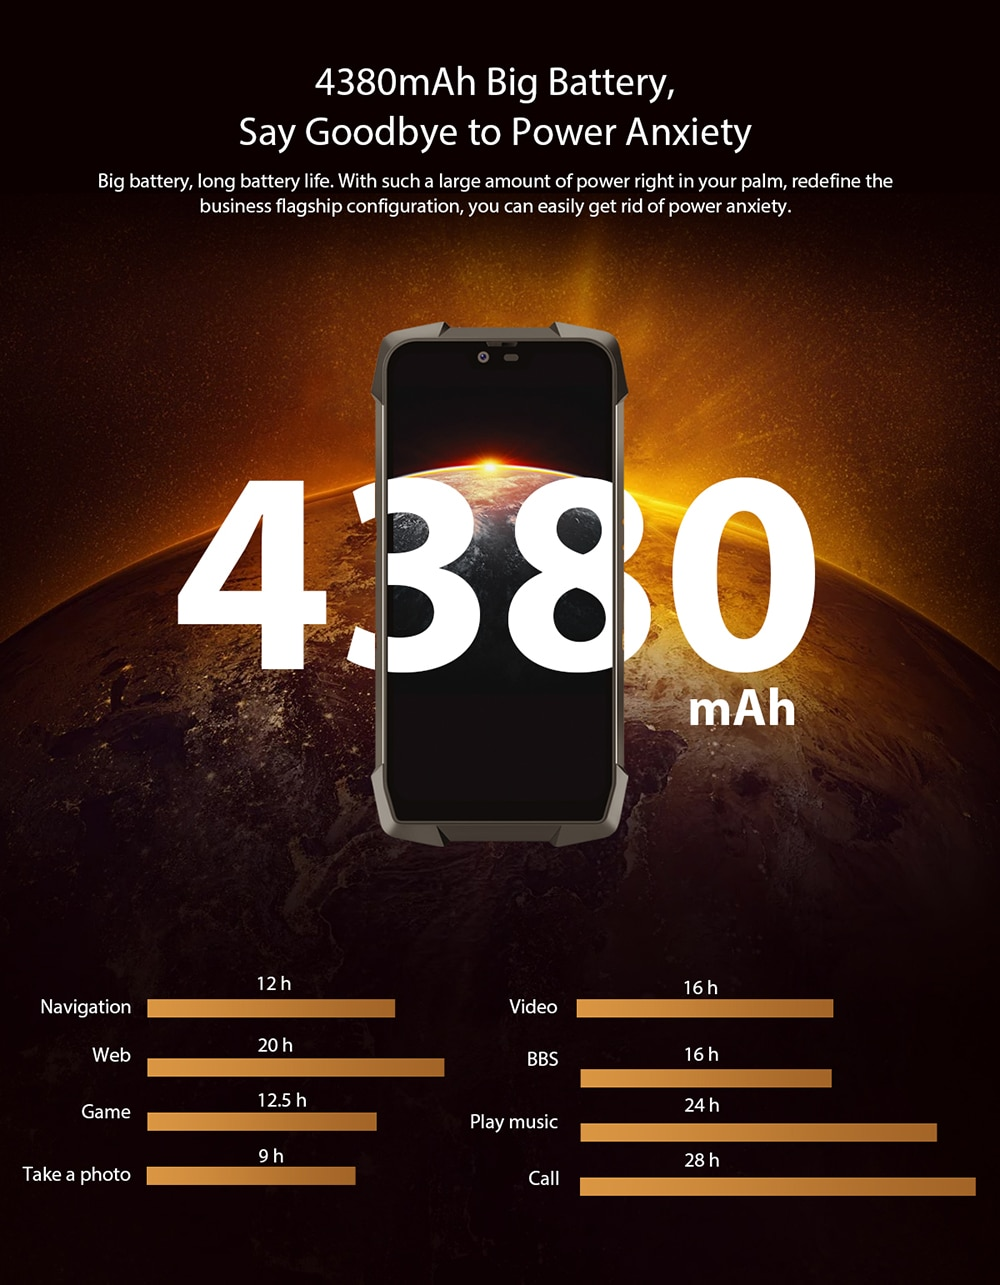 HTB1L.ngcqWs3KVjSZFxq6yWUXXaG - Blackview BV9700 Pro IP68 Rugged Mobile Phone Helio P70 Octa Core 6GB 128GB Android 9.0 16MP 8MP Night Vision Camera Smartphone